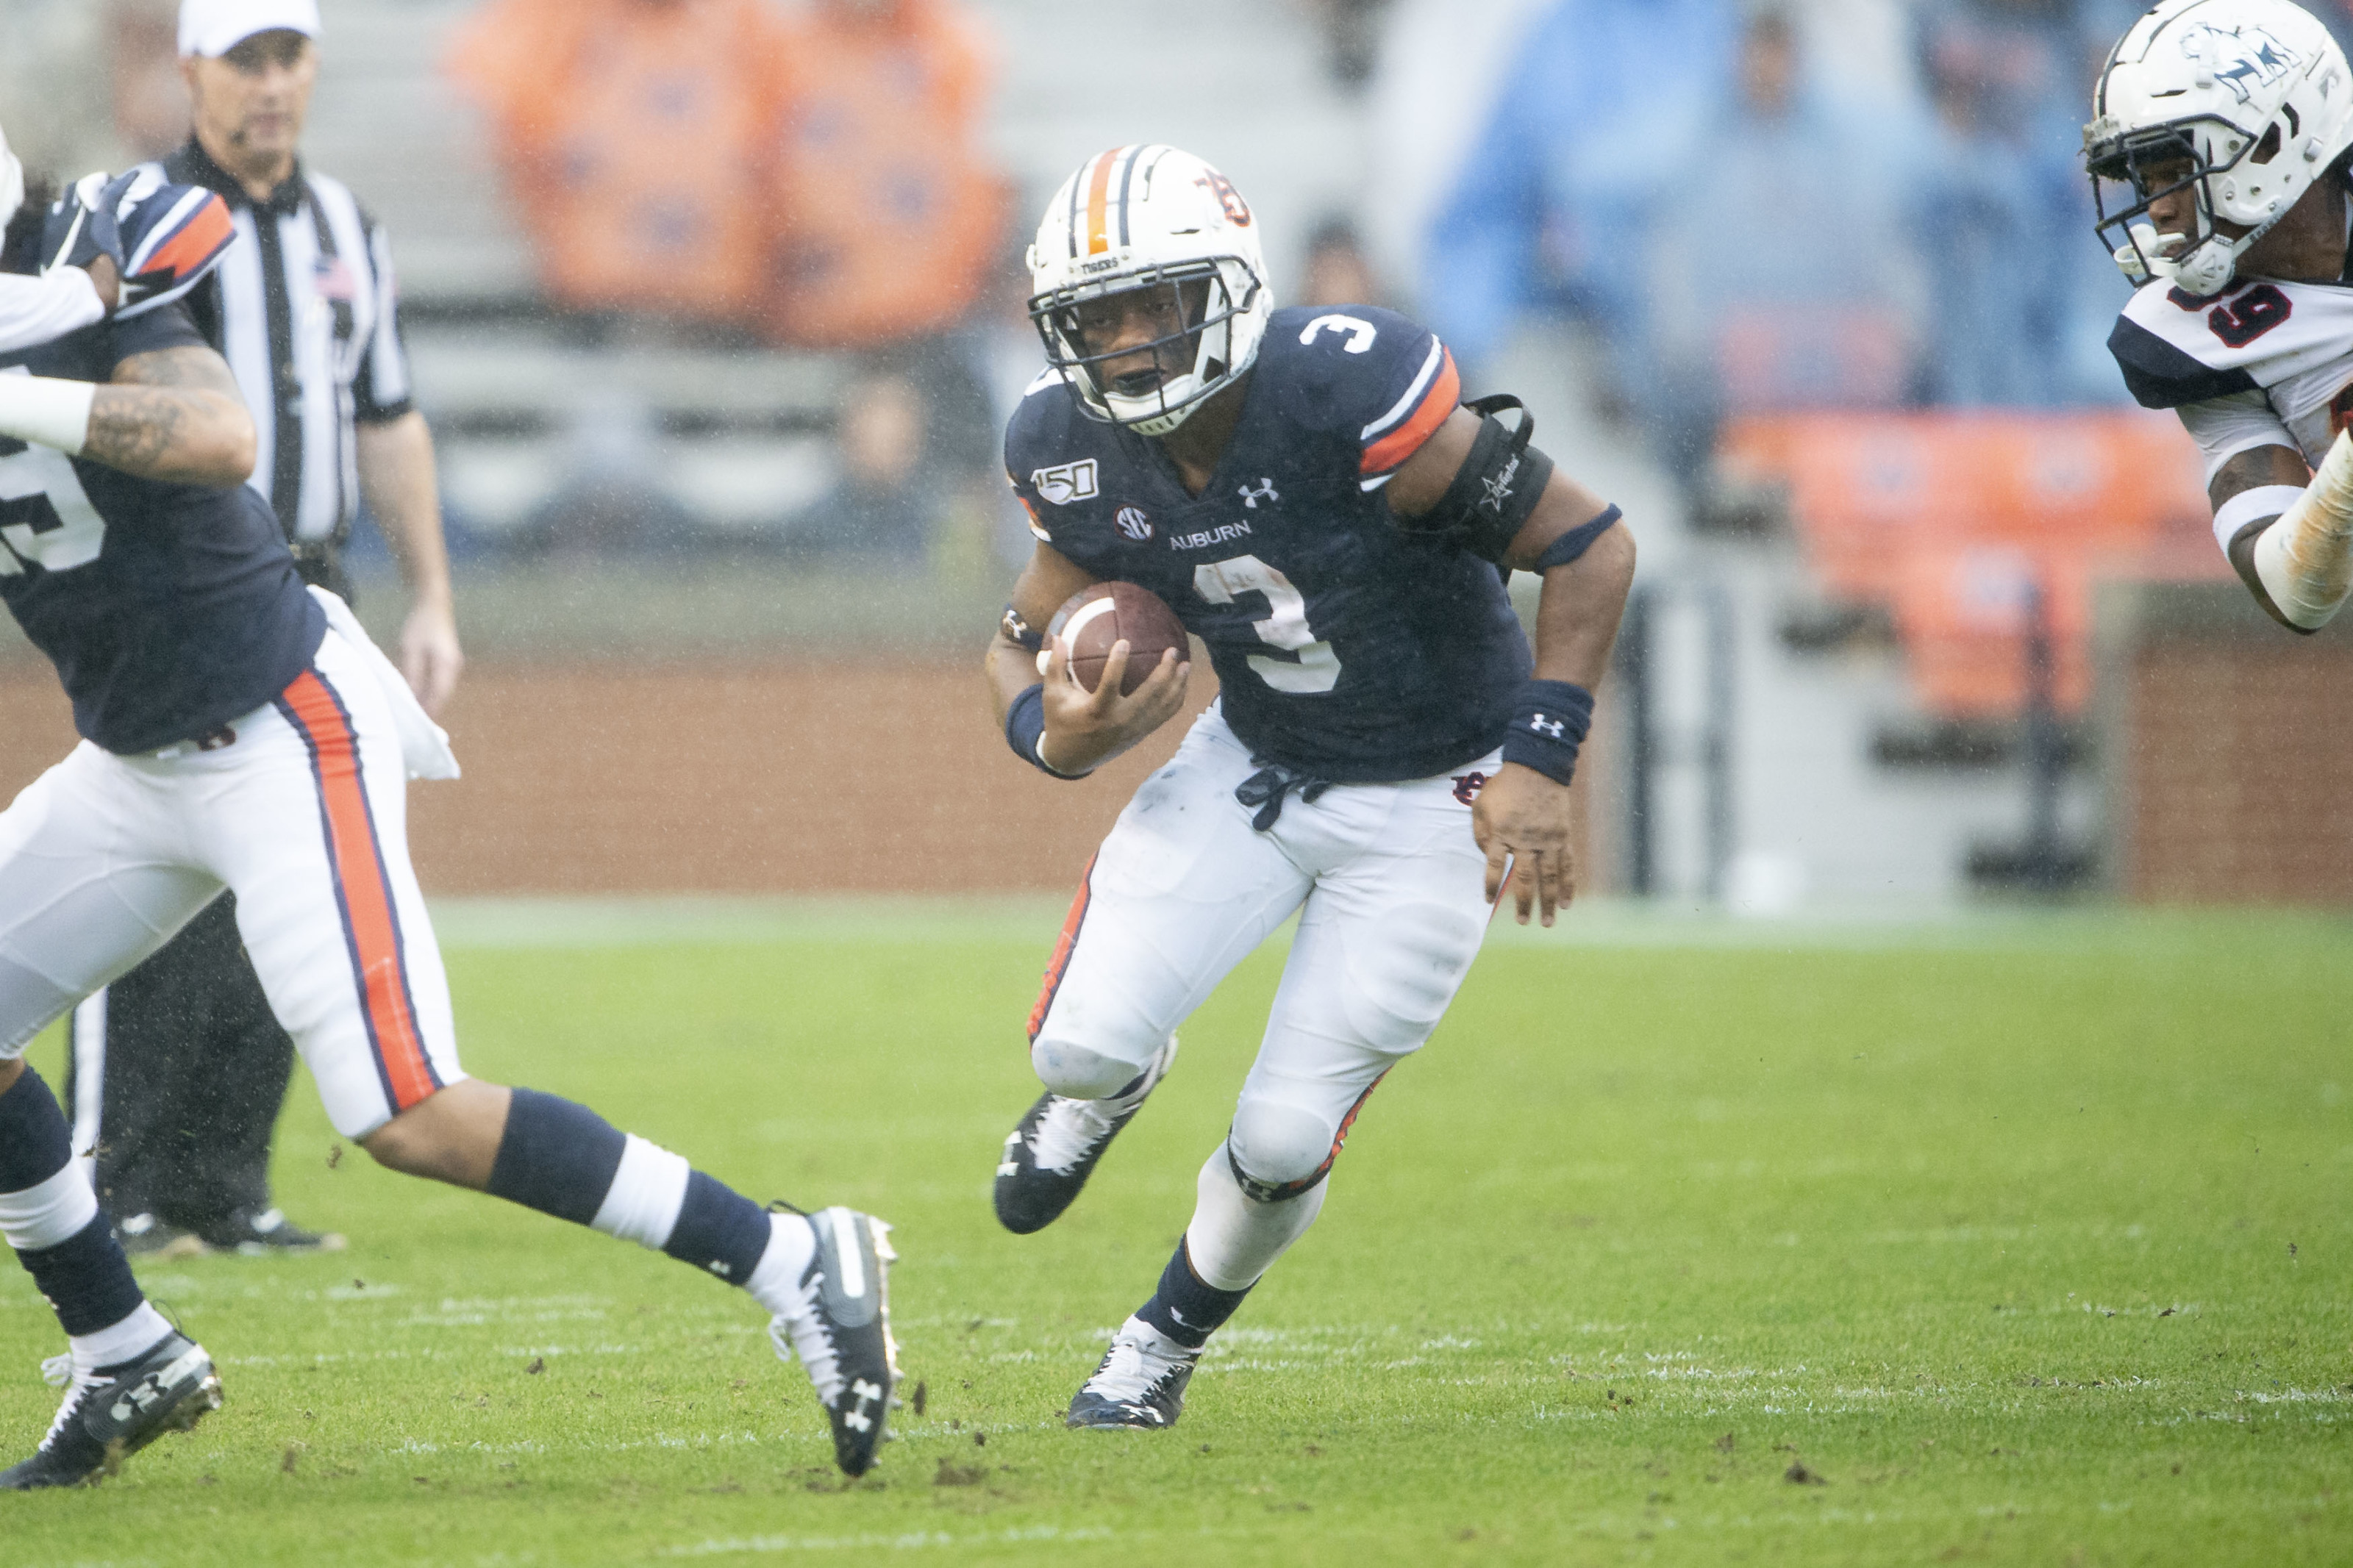 Auburn Football: 3 players poised to break out in 2020